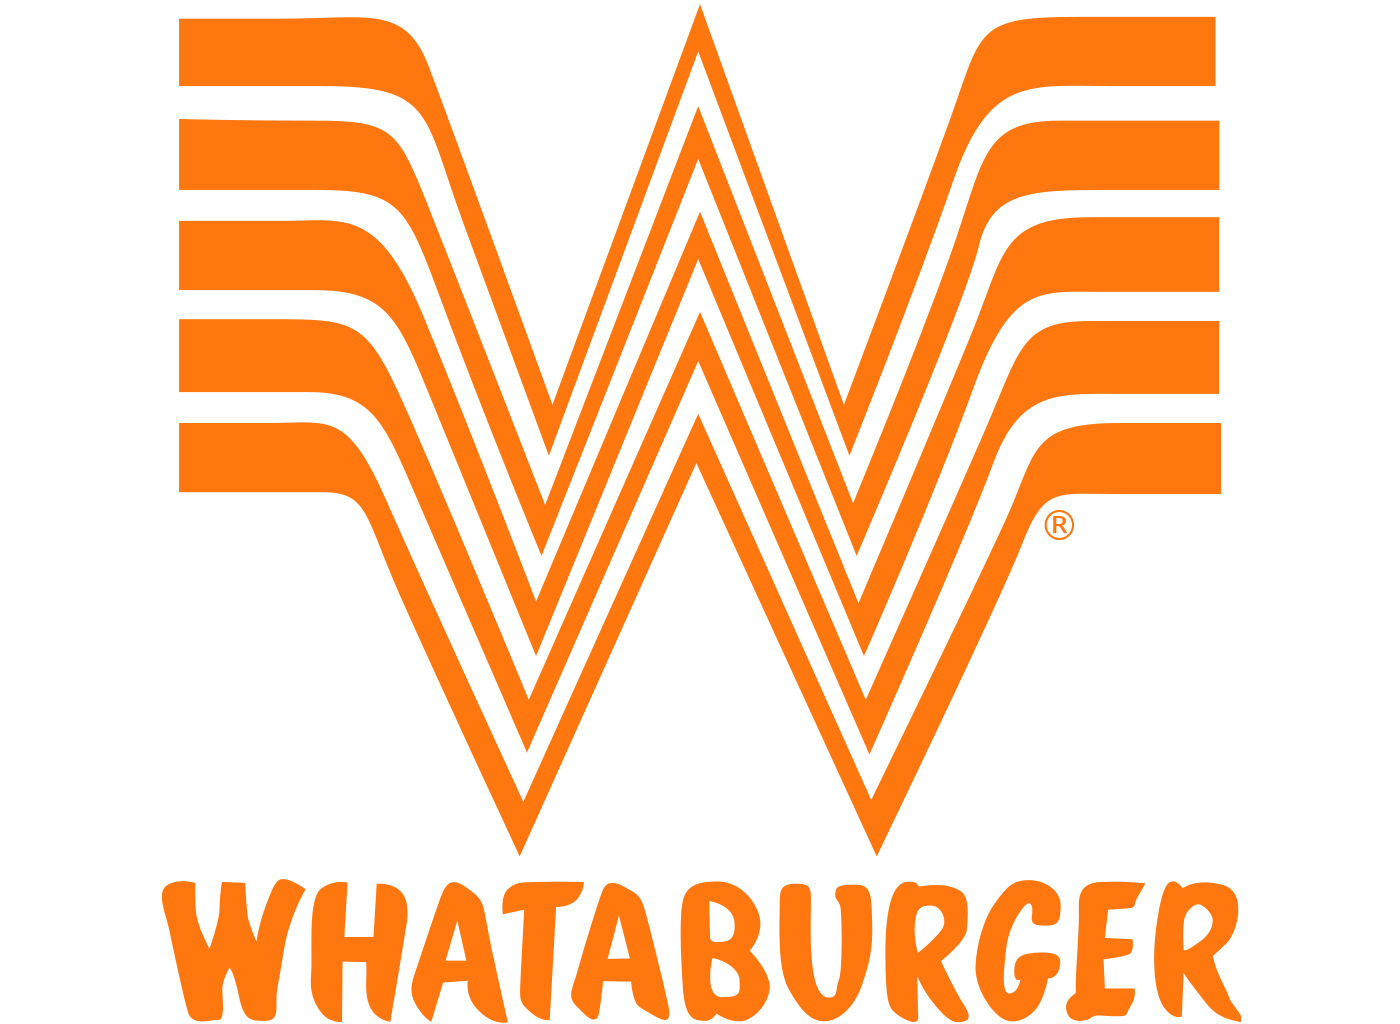 Now you can show everyone just how much you love your Whataburger.